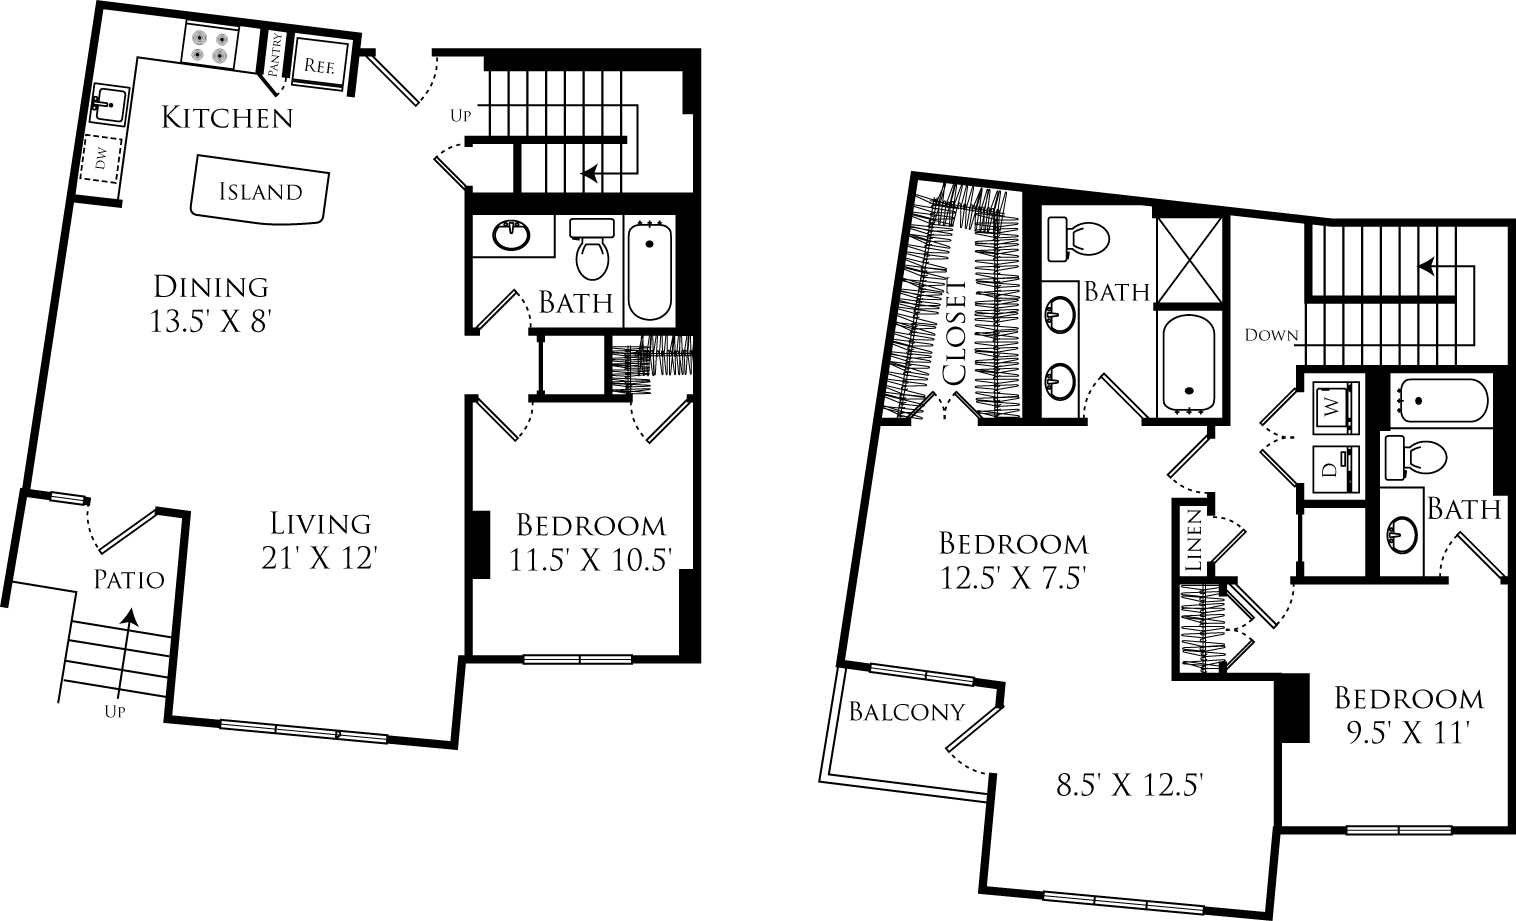 C3J floor plan is a duplex with 3 beds, 3 baths and is 1849 square feet